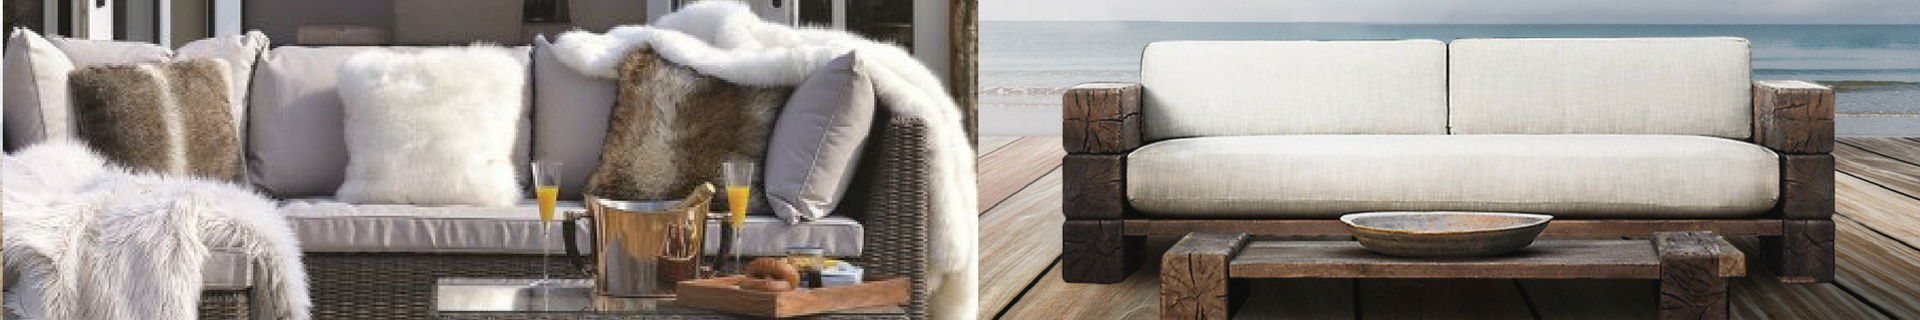 The Verbier Collection - Luxury Outdoor Furniture